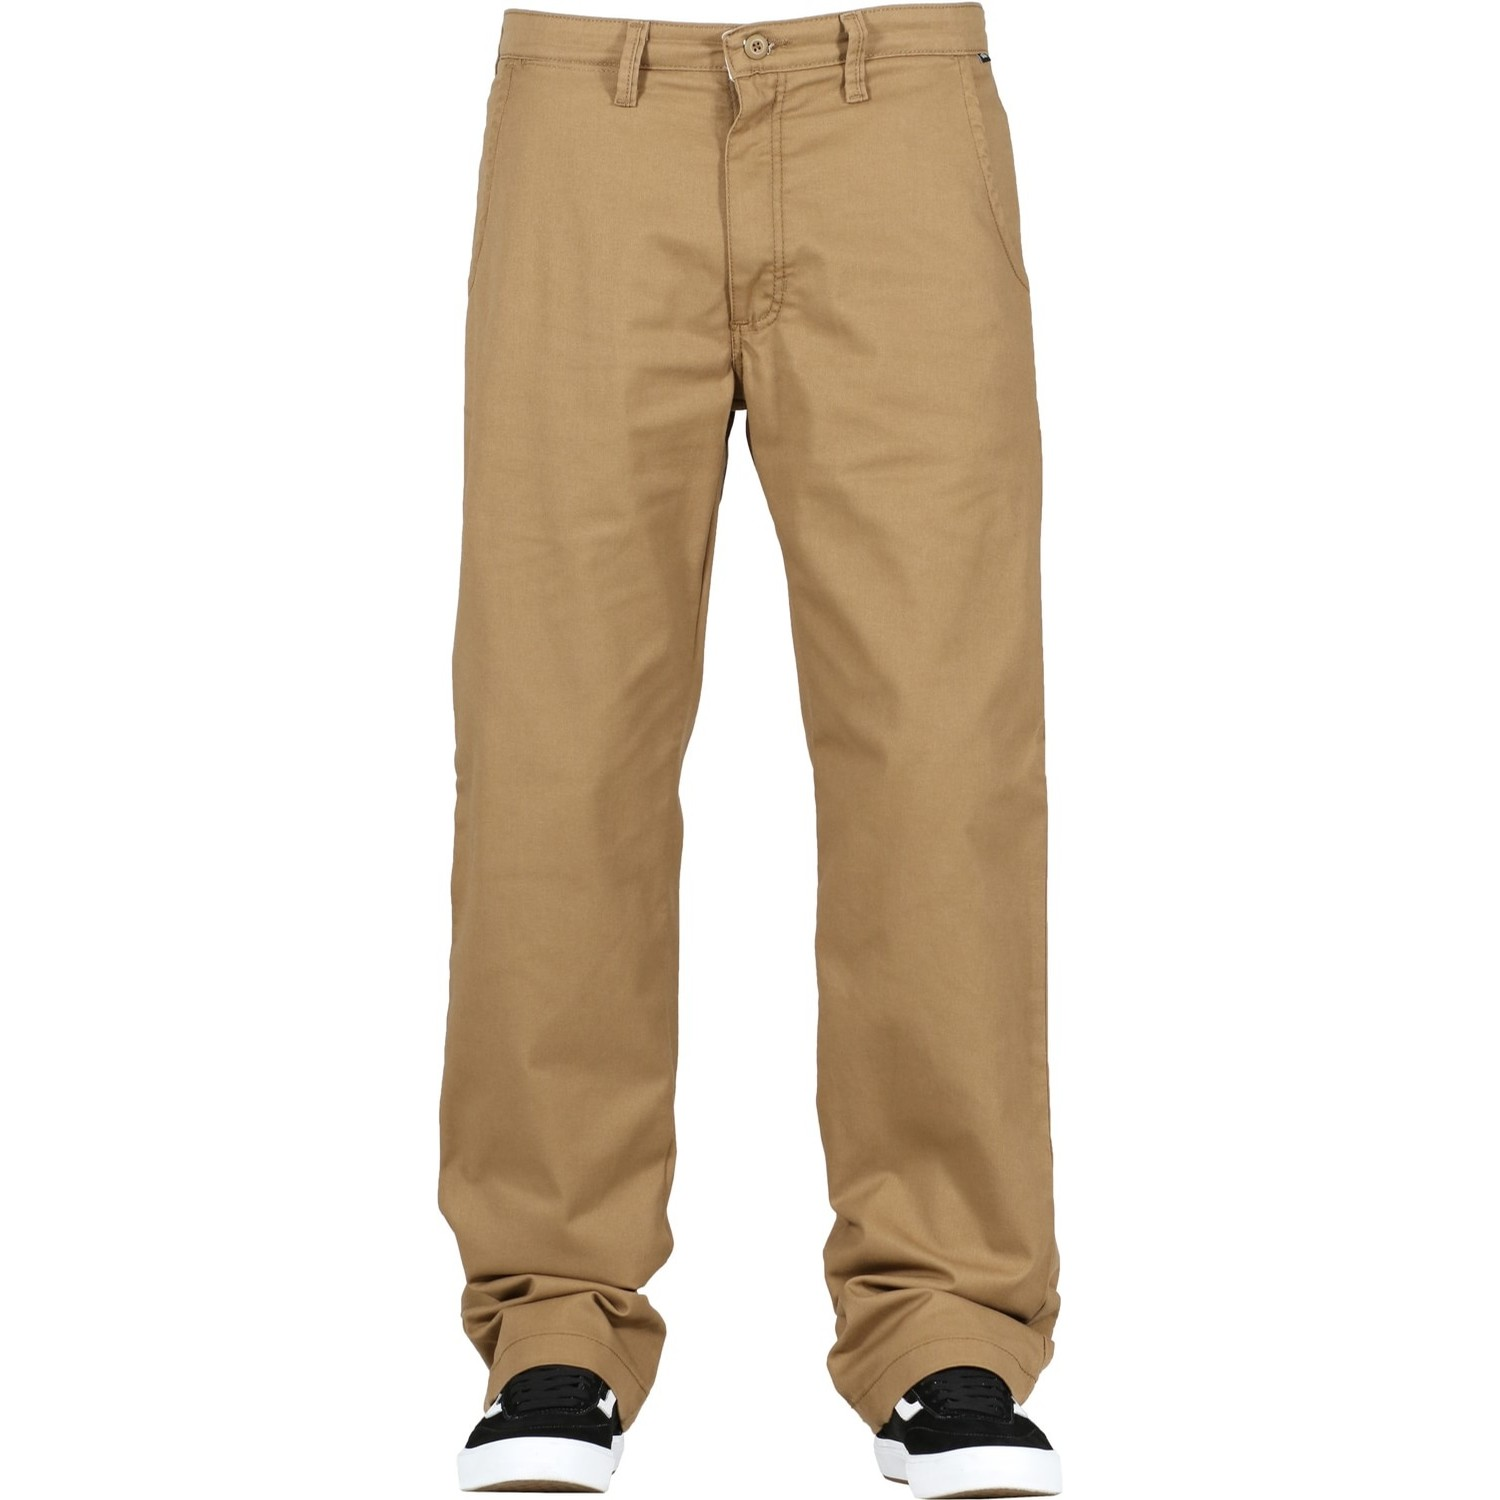 Authentic Chino Pro Pant (Dirt)